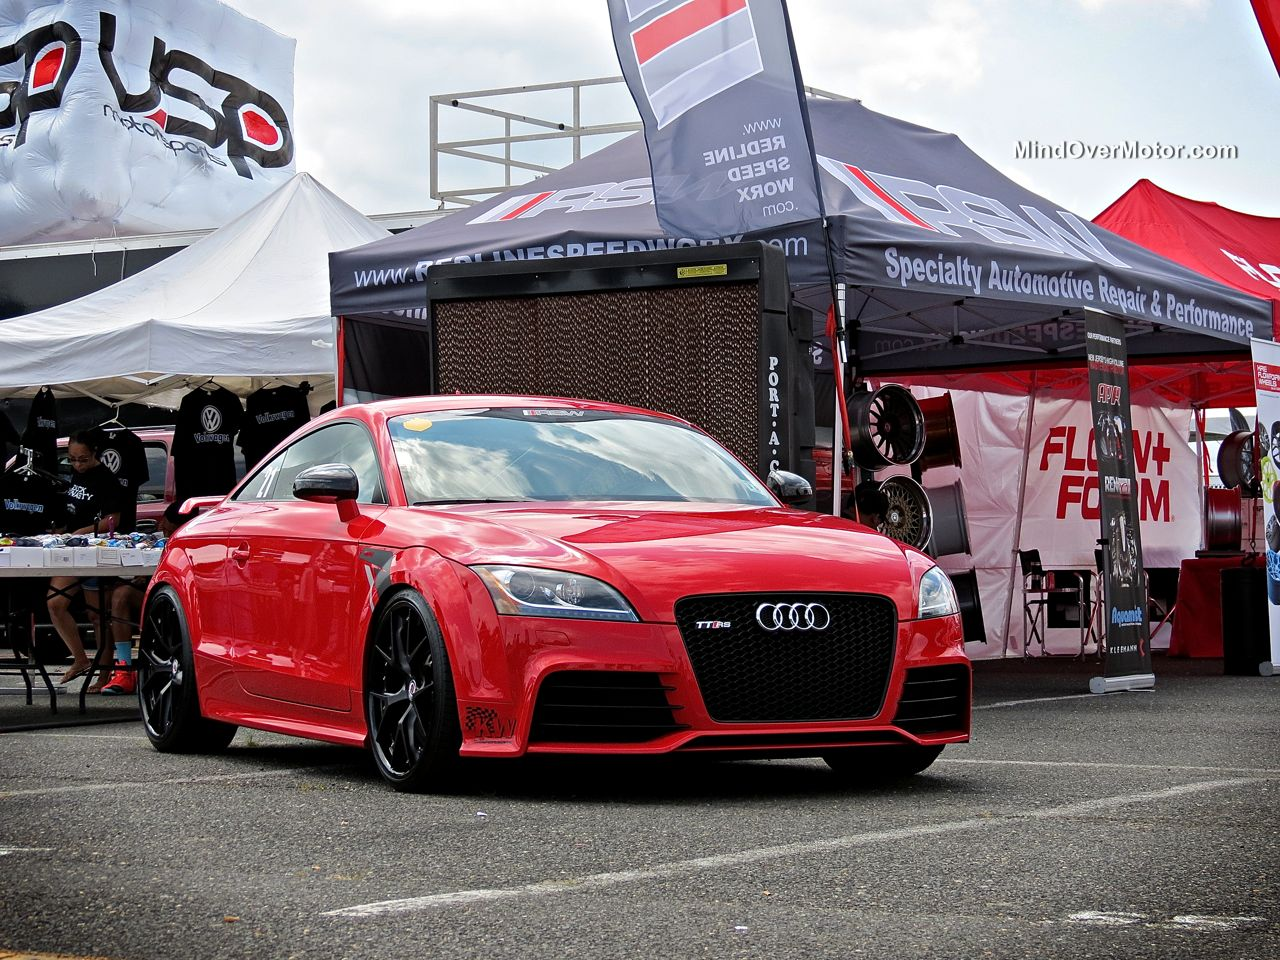 Waterfest 20 Audi TT-RS